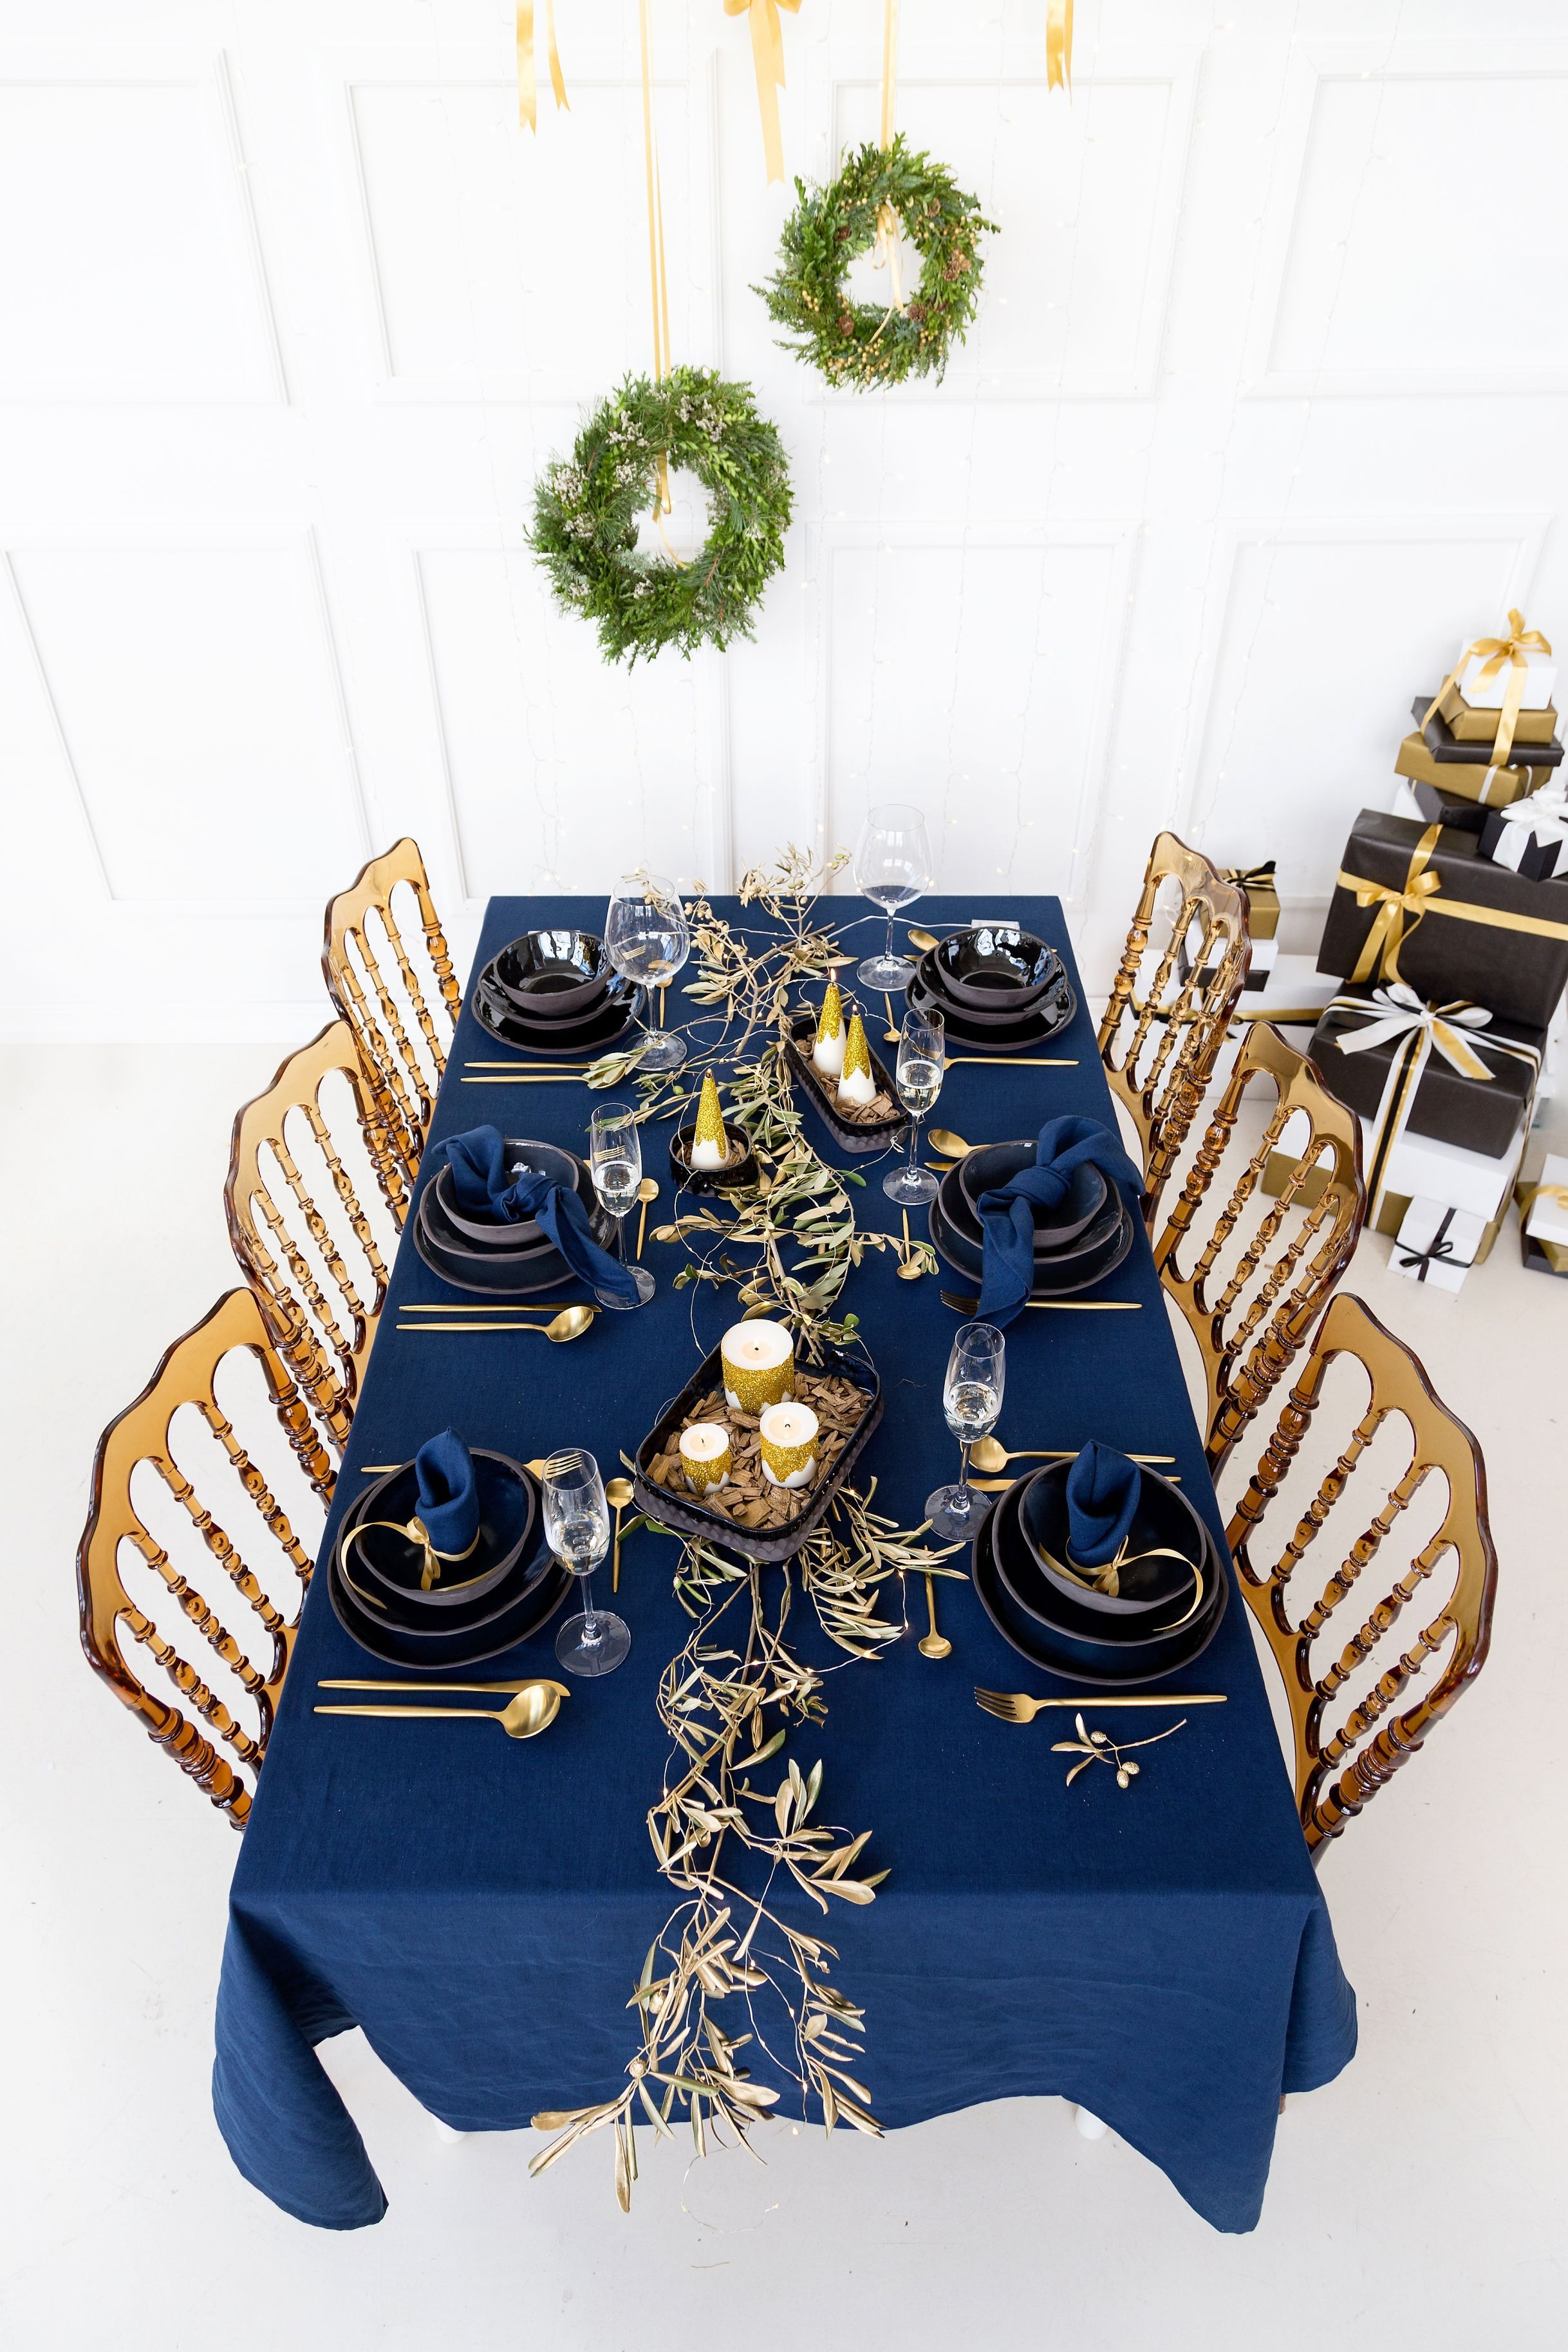 Navy blue Christmas tables cape with gold glitter soy wax candles | christmas table settings blue and gold #christmas #christmasgiftideas #christmasgift #christmasdecorations #christmasmood #christmasspirit #christmasshopping #christmasdecor #christmasinspiration #holidaydecor #christmasdining #christmasentertaining #cozychristmas #itsbeginningtolookalotlikechristmas